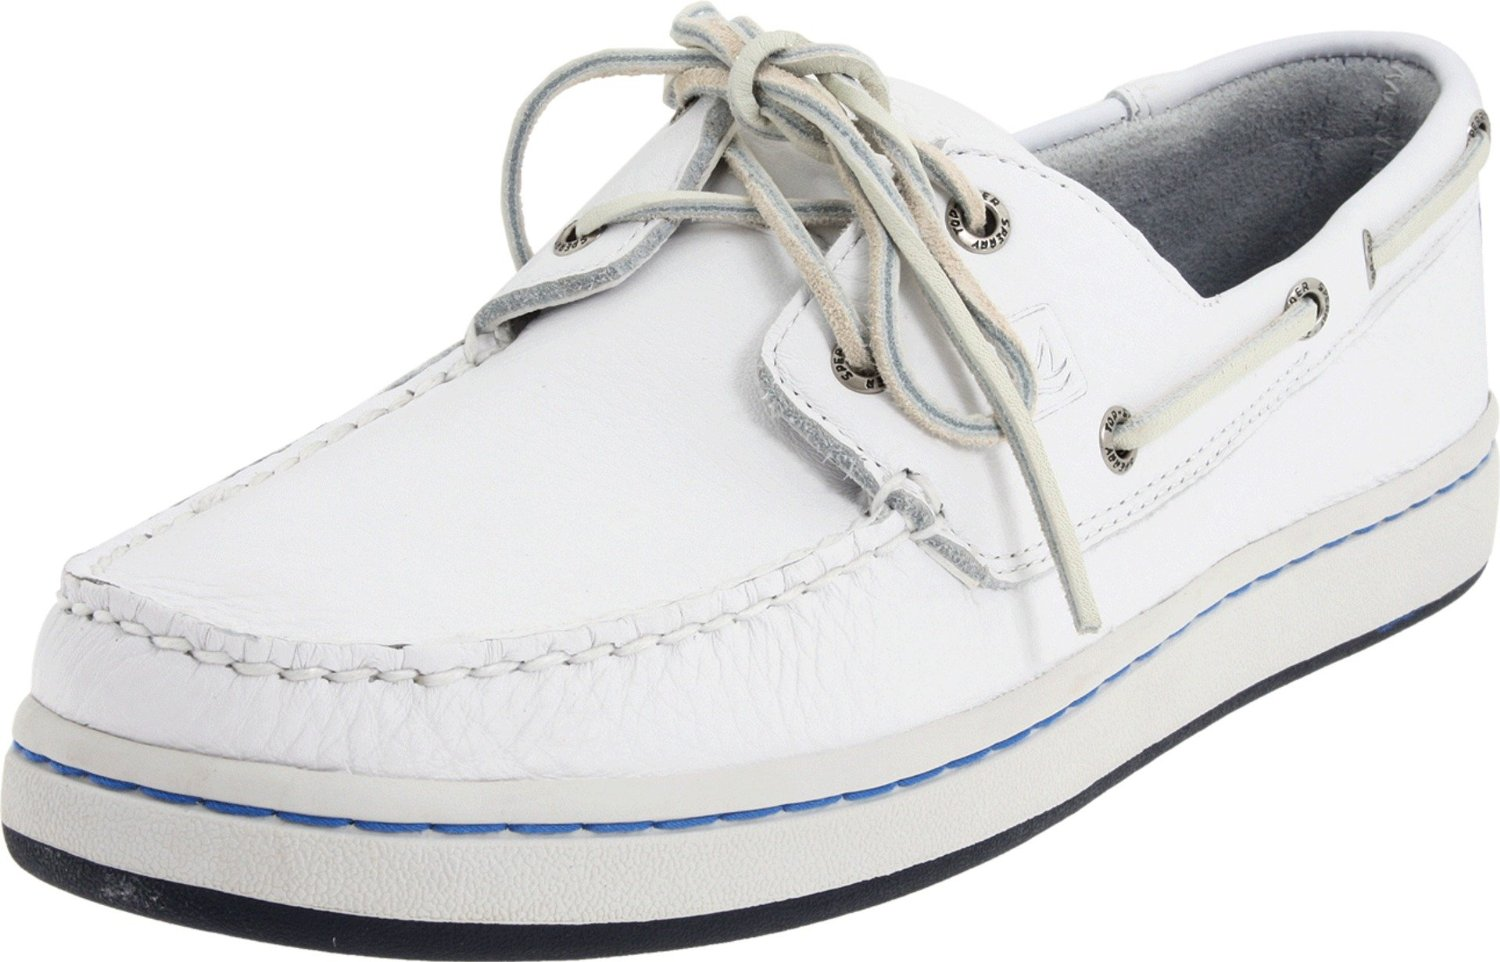 sperry top sider mens sperry cup boat shoe in white for